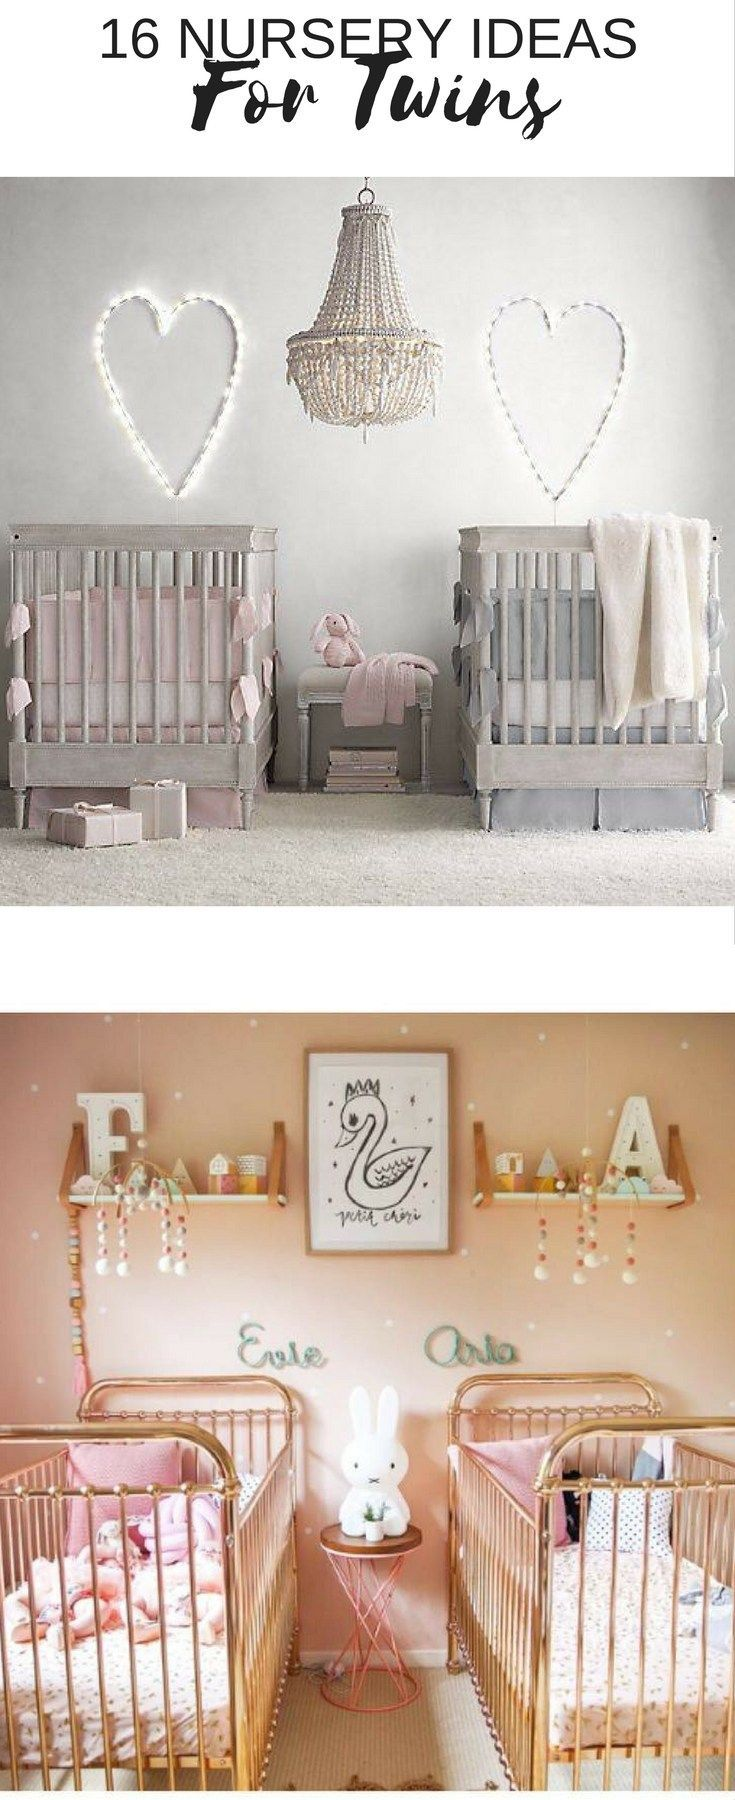 458 best The Nursery images on Pinterest | Child room, Baby rooms ...